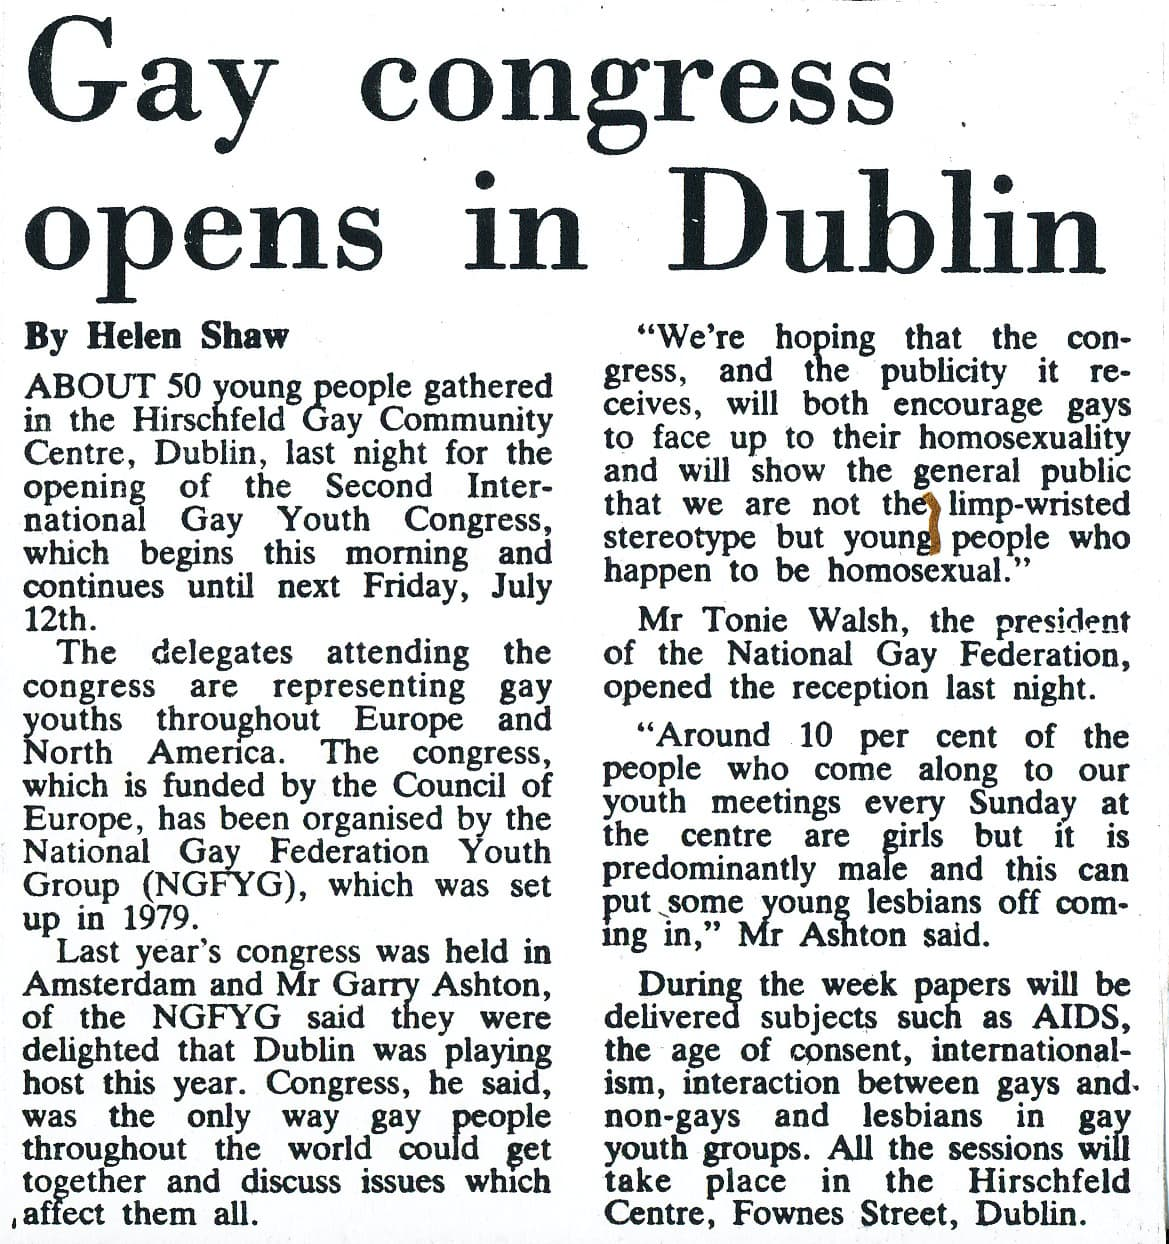 """Taking a look at the history of GCN: Exctract from a GCN article by Helen Shaw. The headline reads """"Gay congress opens in Dublin""""."""